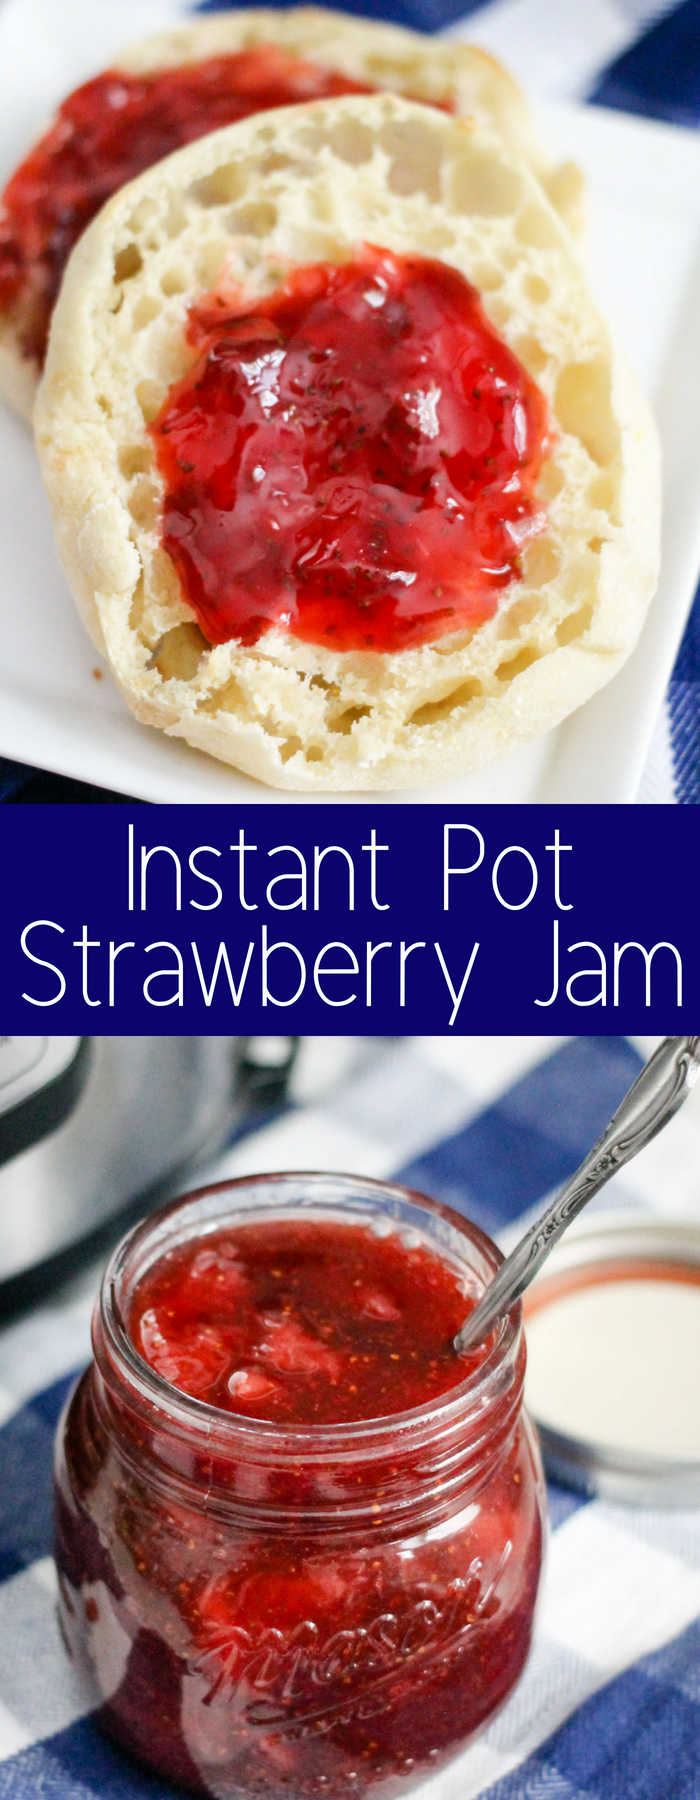 Only four ingredients in this super simple and delicious Instant Pot Strawberry Jam. Perfect for sandwiches, ice cream topping, or whatever you want!